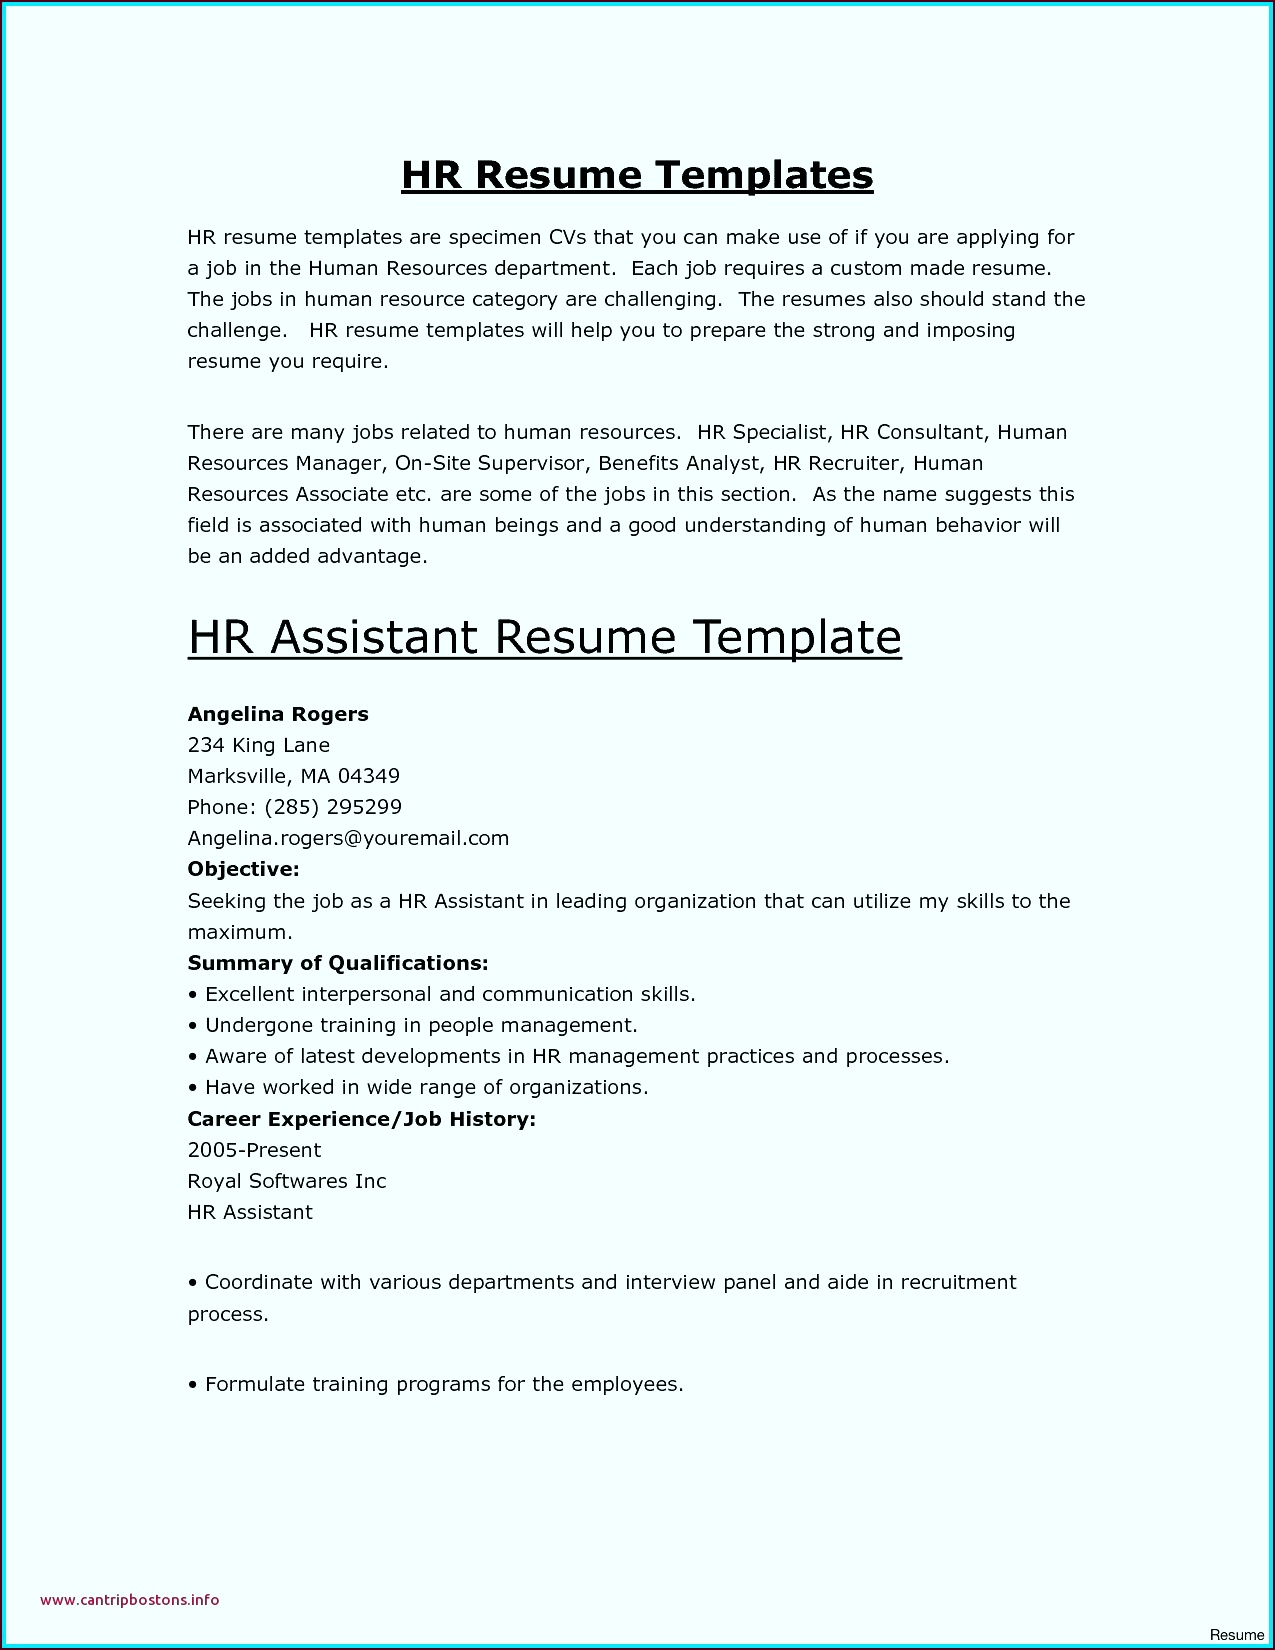 Free Resume Builder Templates Beautiful Free Resume Template Builder Inspirational Od Specialist Sample Best Google Docs wupbe